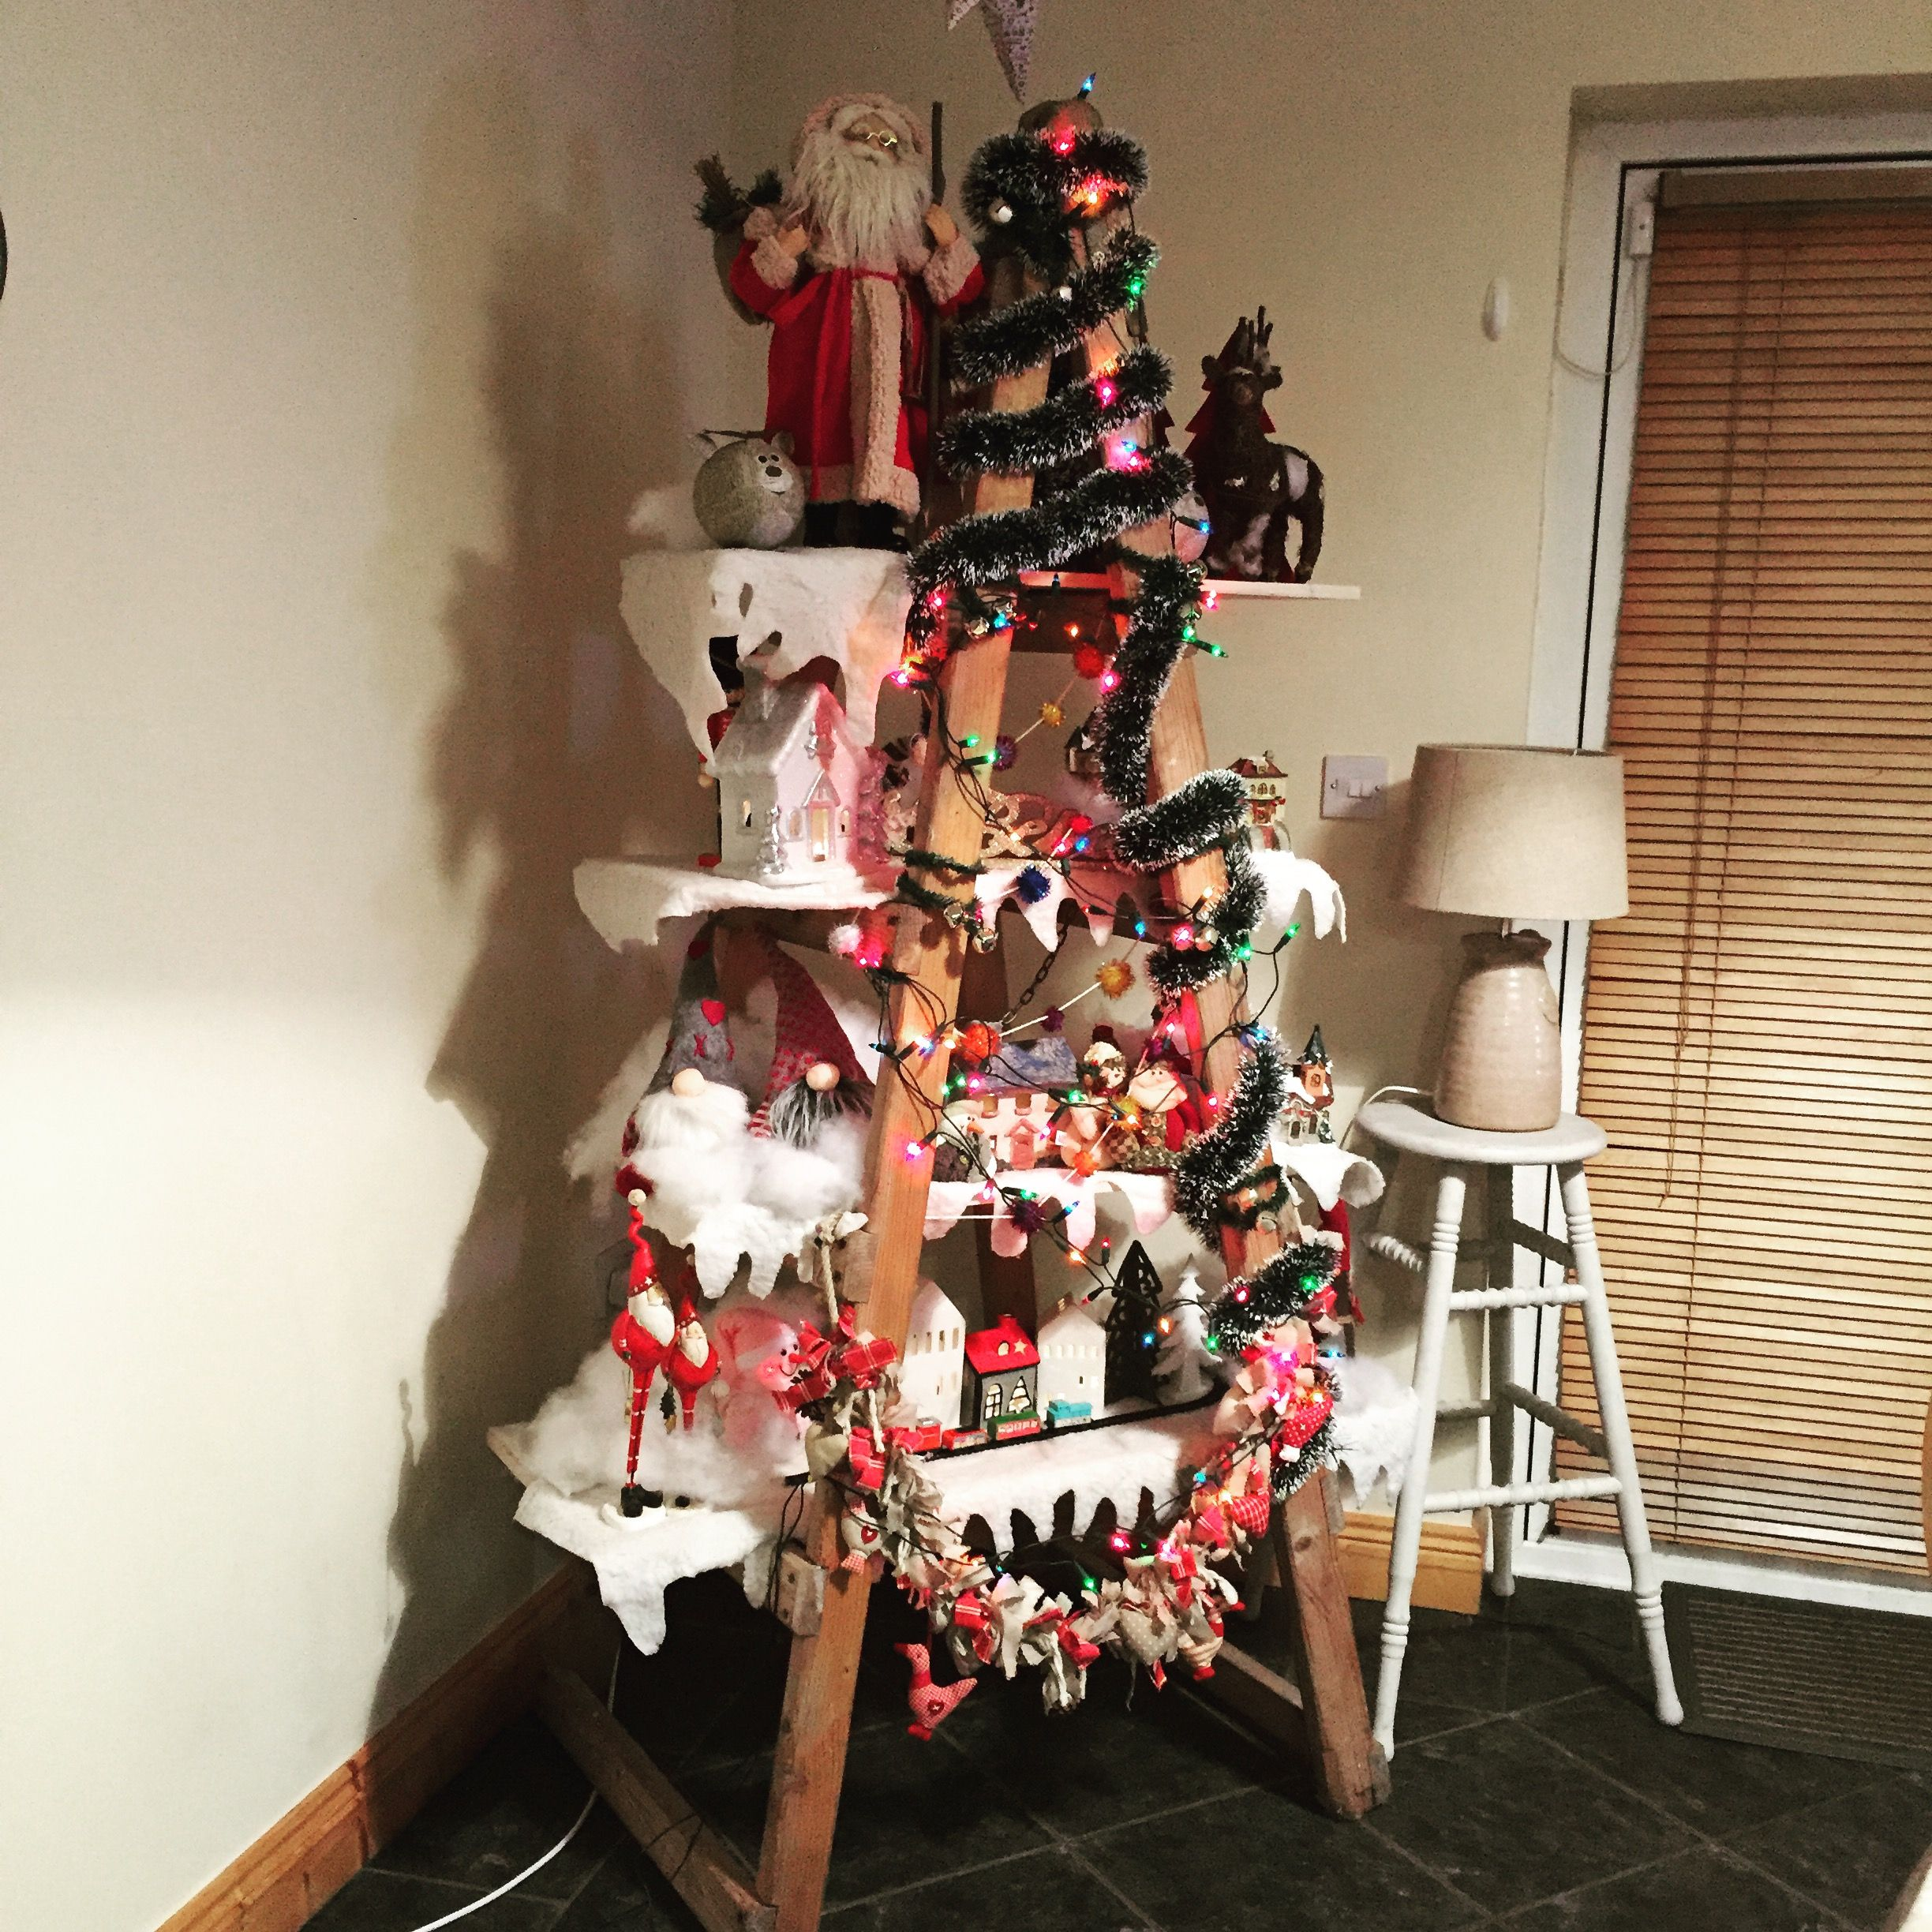 My ladder Christmas tree 🎄